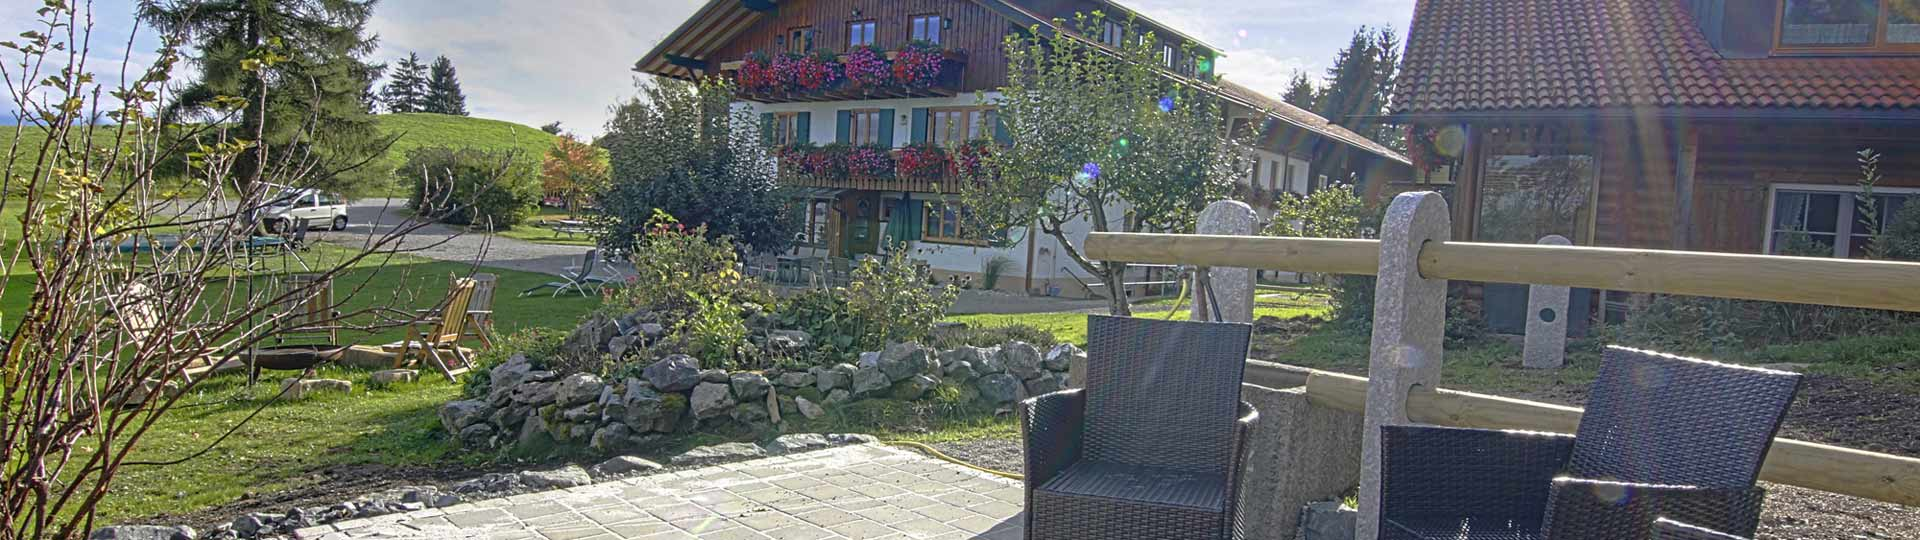 Terrasse Grillhuette HDR2 1920x540k